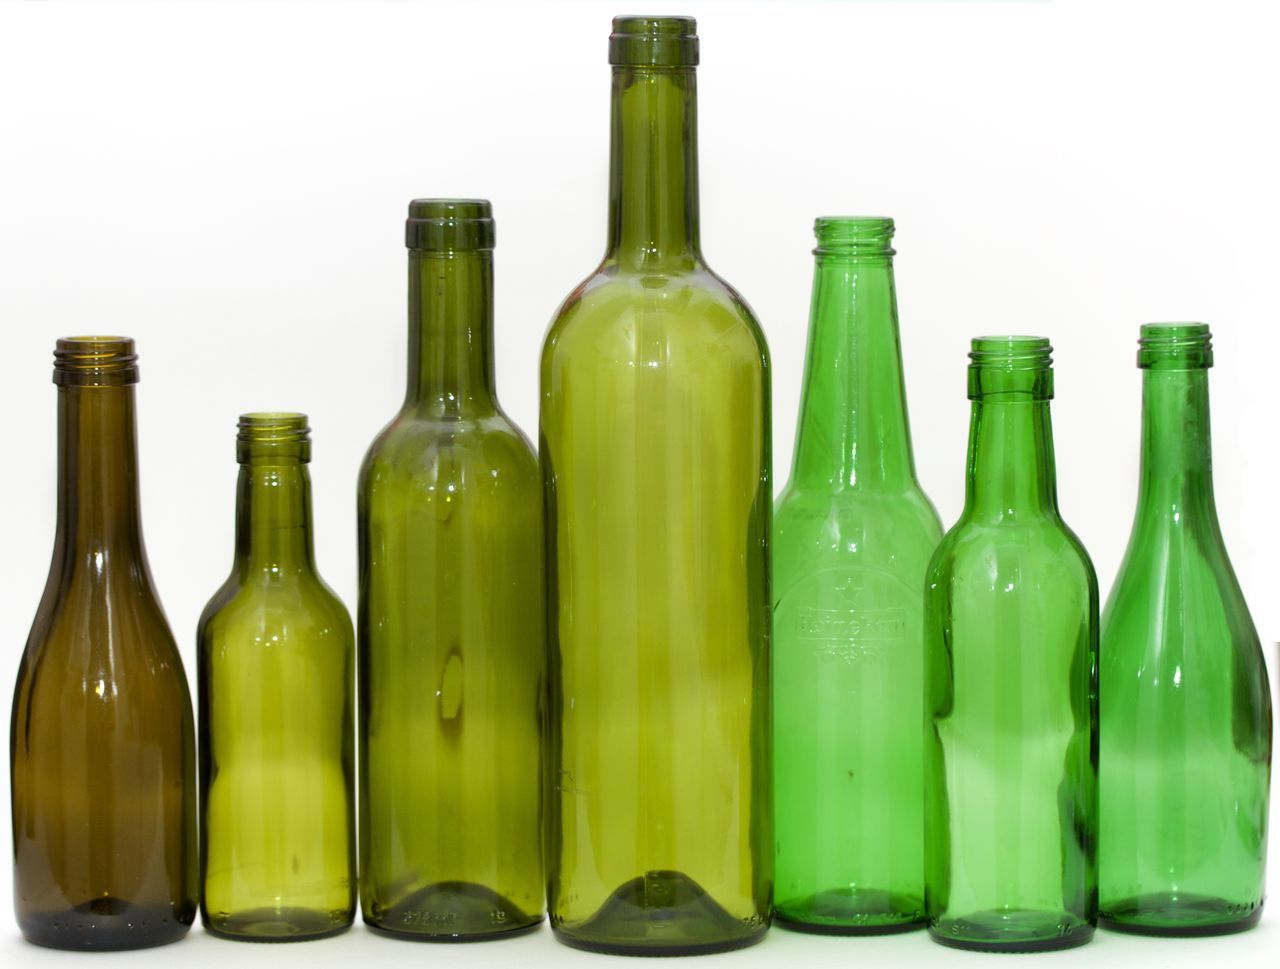 seven green bottles on white background Agriculture Alcohol Beer Bottle Bottle Cork - Stopper Drink Drinking Glass Food Food And Drink Green Color No People Wine Wine Bottle Winemaking Winery Winetasting